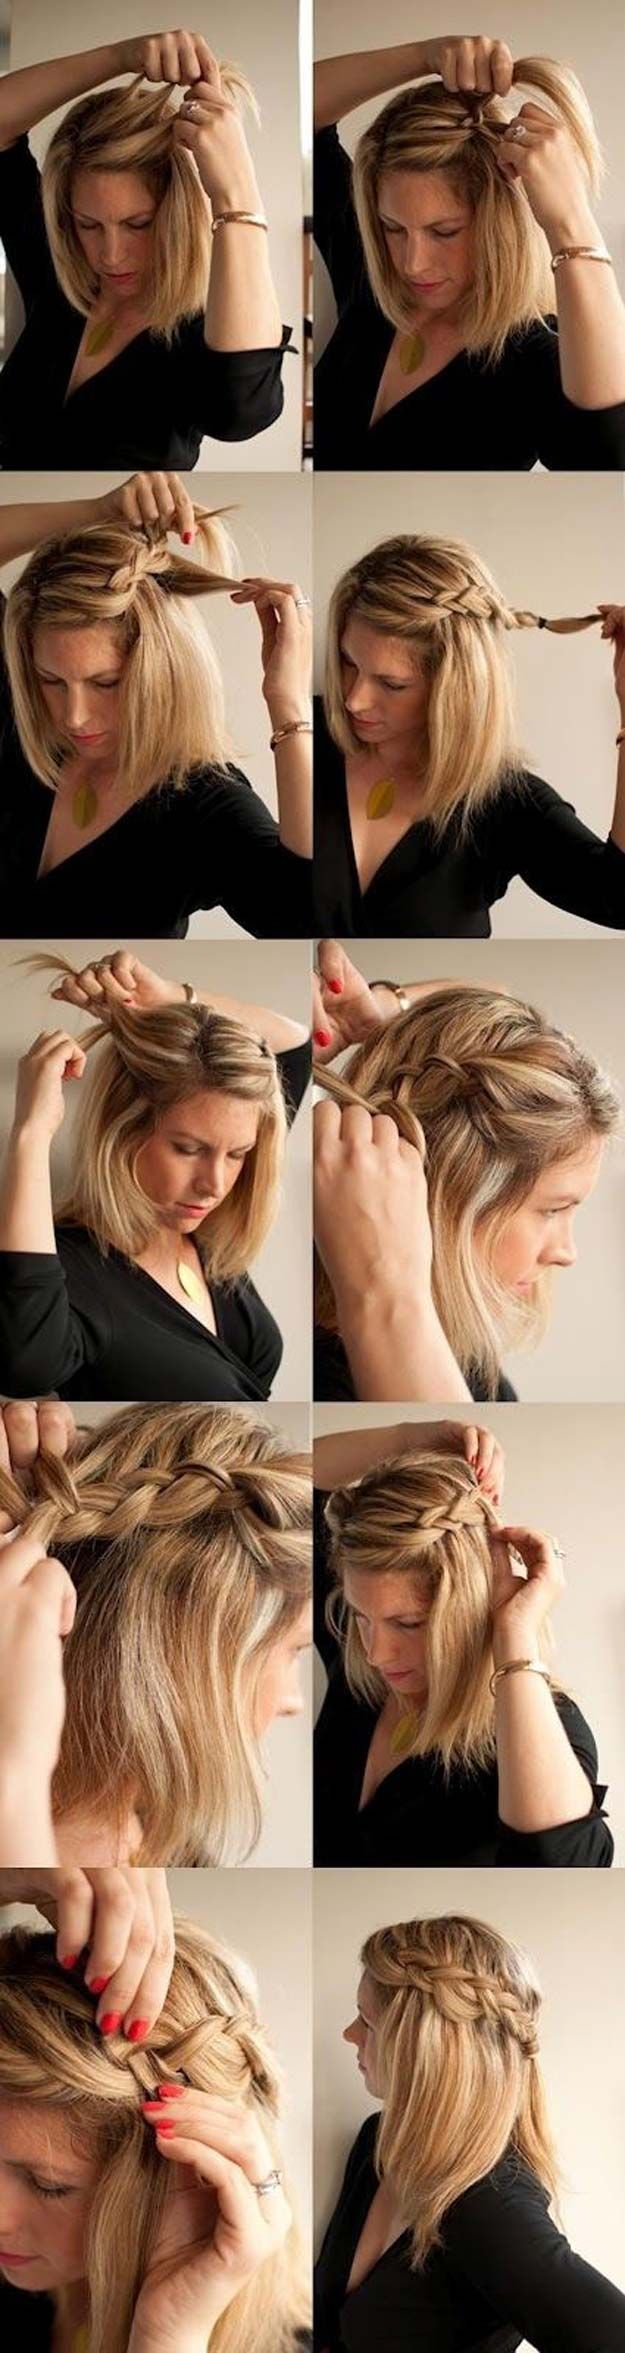 The 48 Best Medium-Length Hairstyles to Steal For Yourself - Easy Braid Hairstyl...